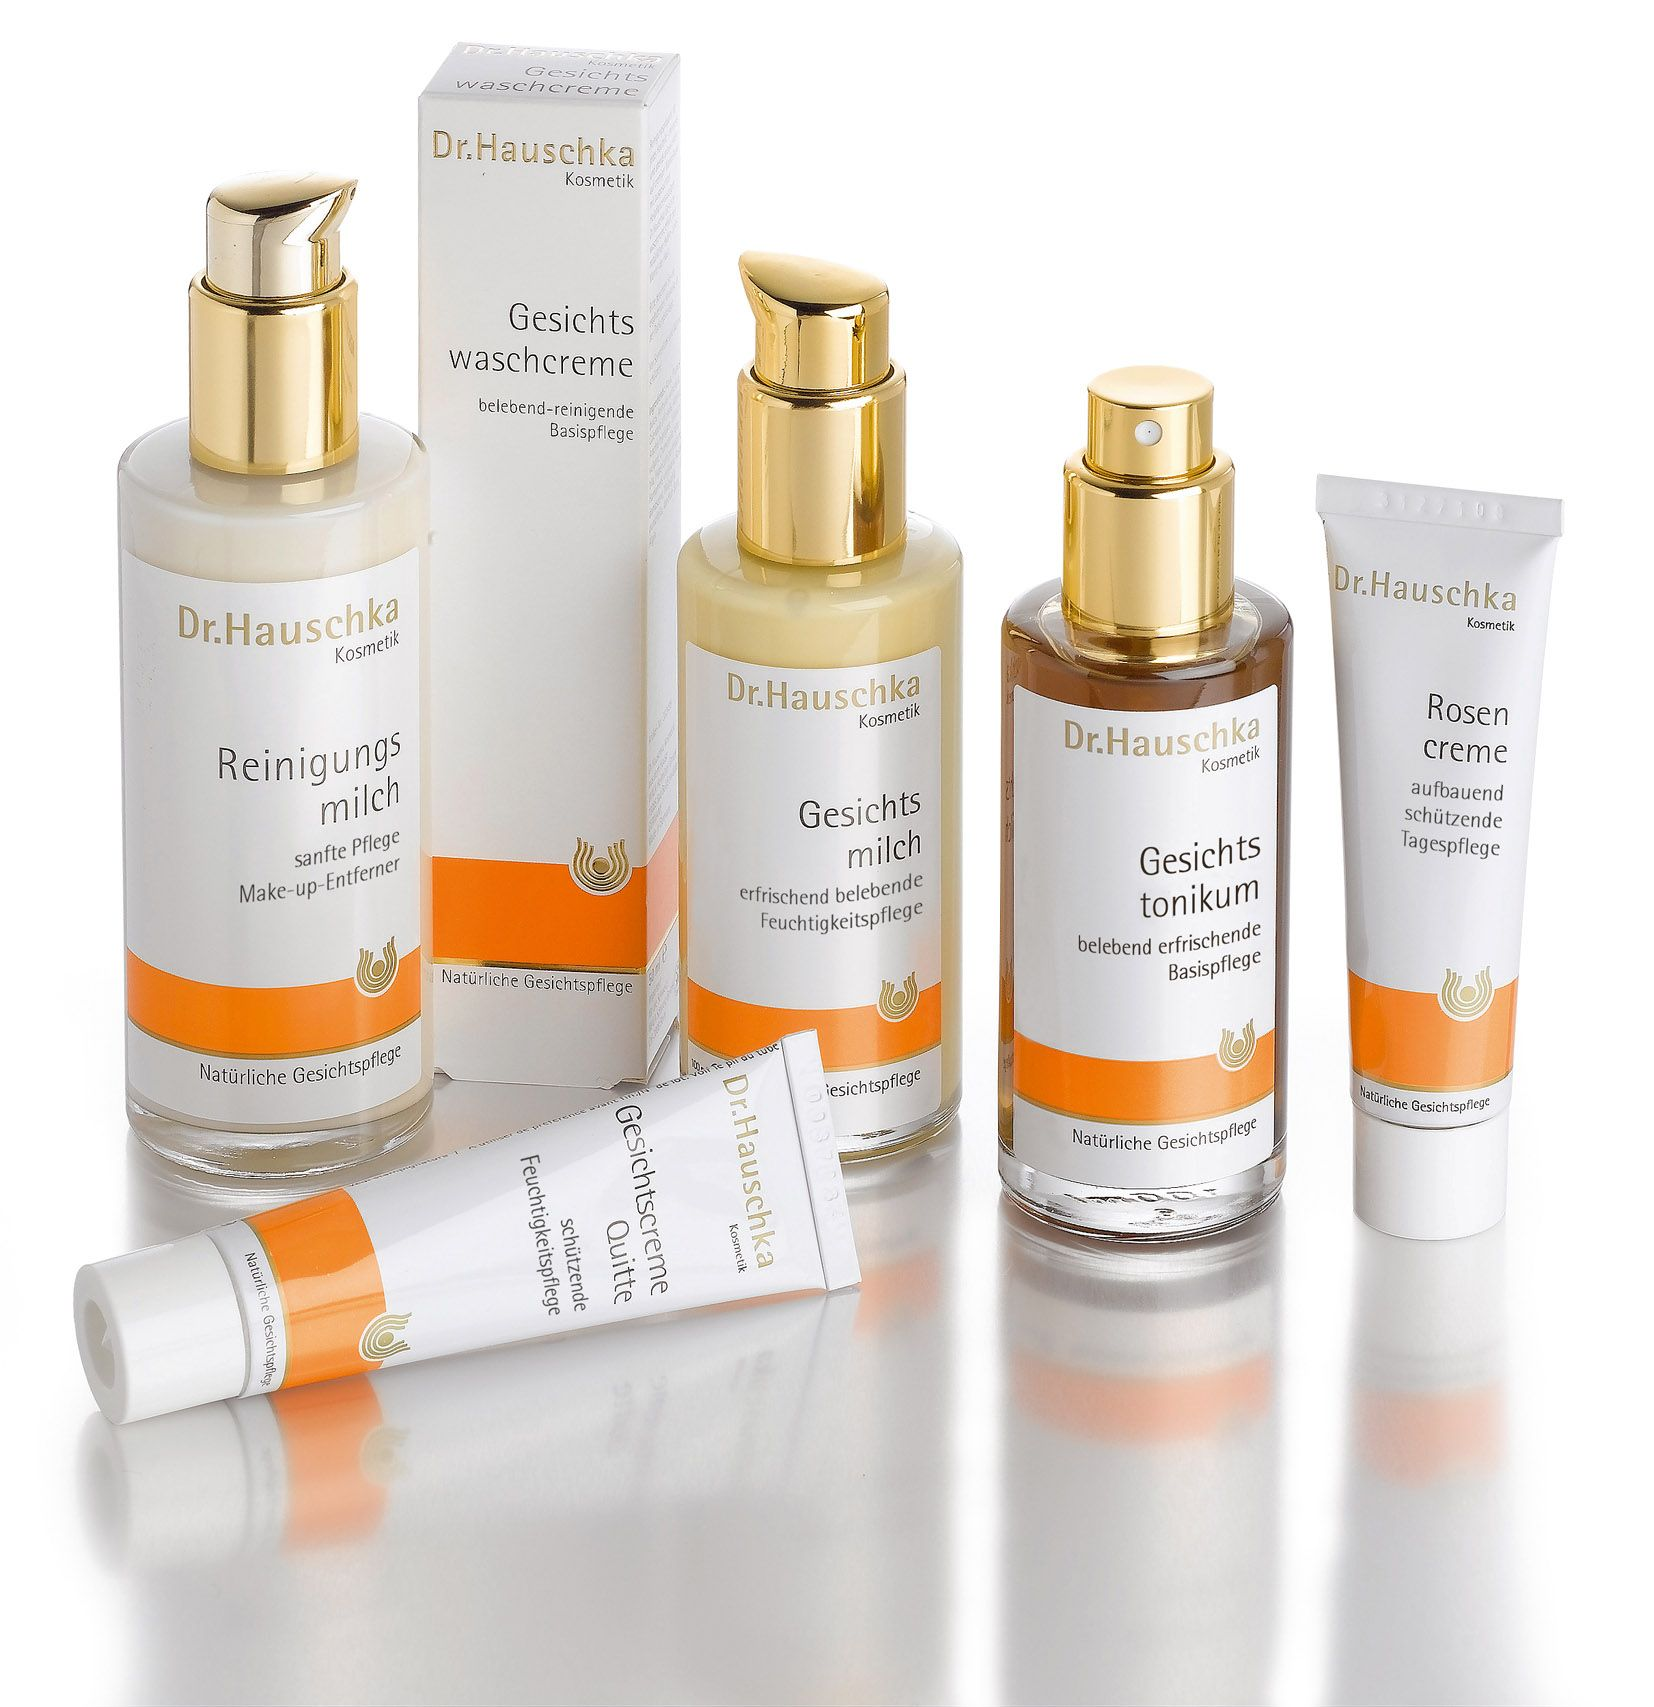 Dr. Hauschka SkinCare. Started using this product about a